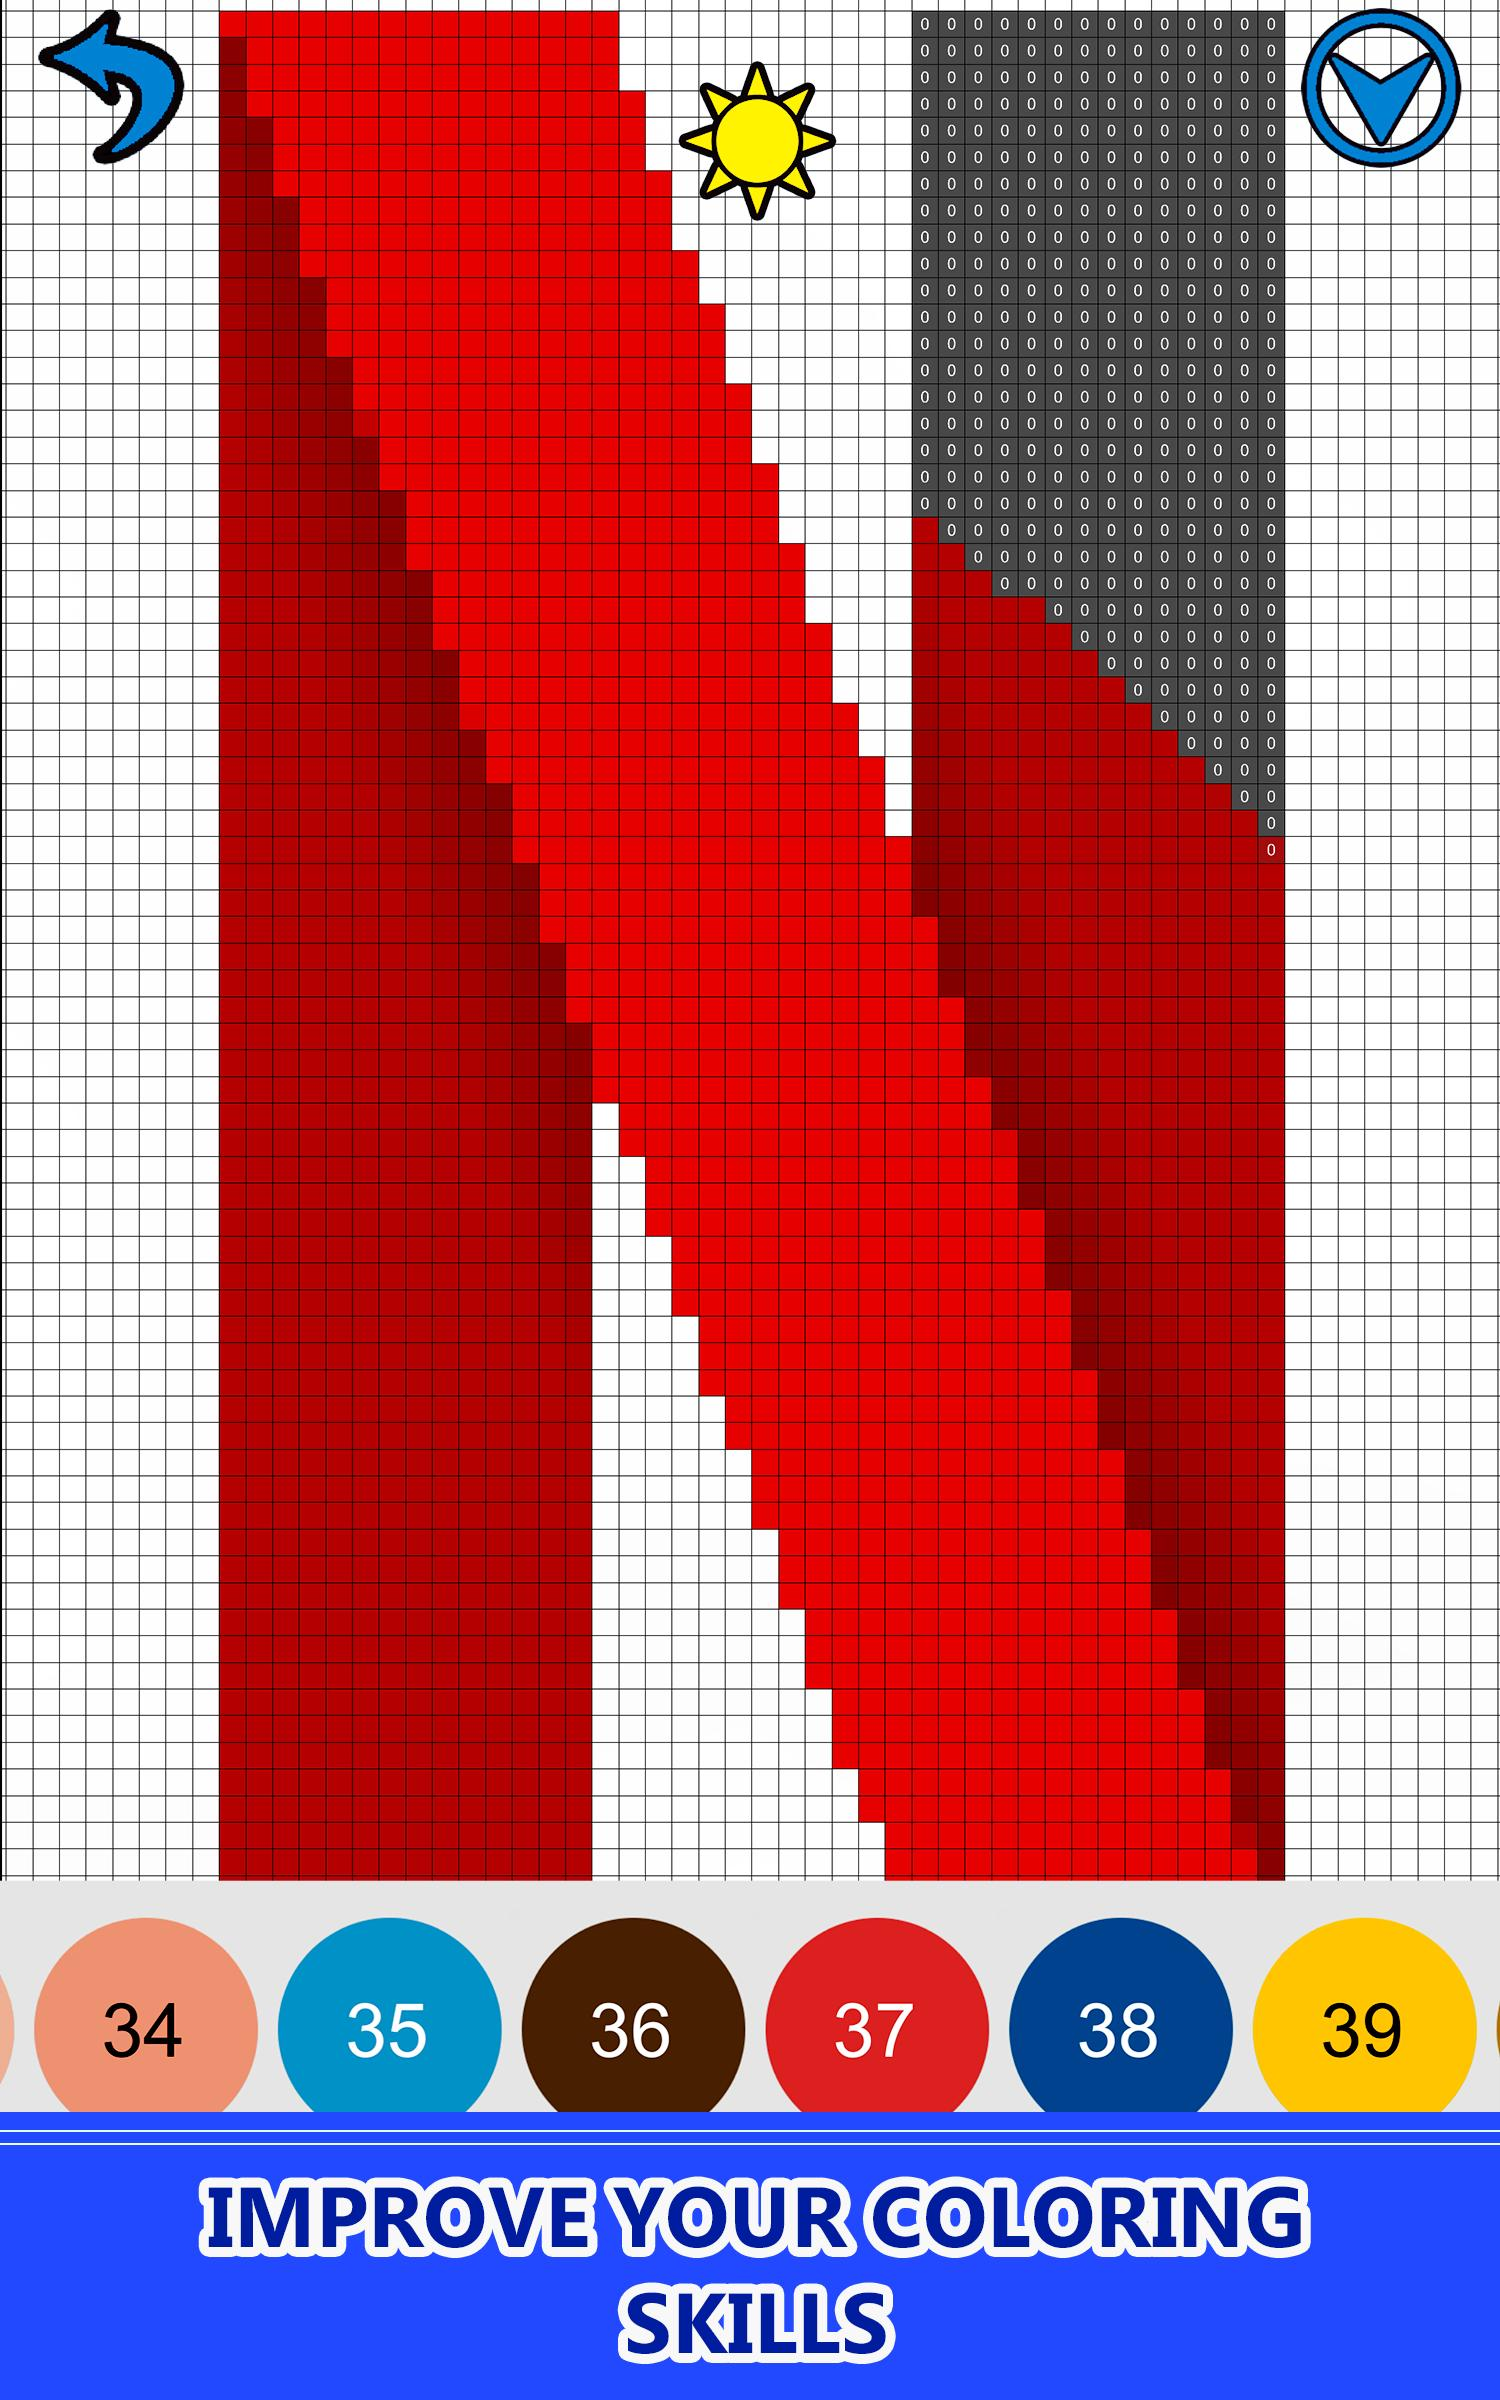 American Logo Color by Number Pixel Art Coloring for